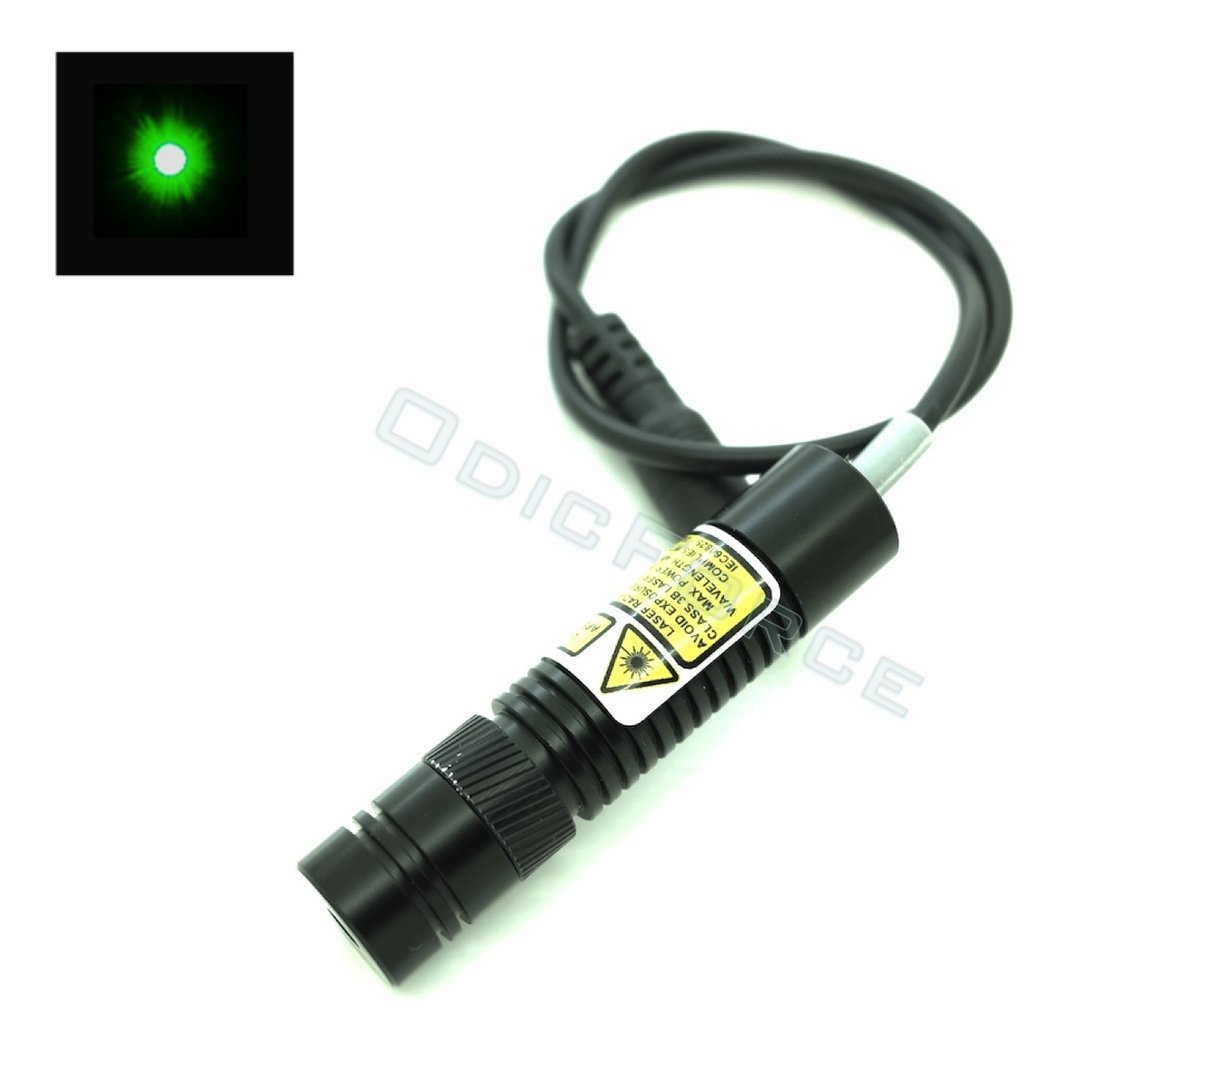 50mW Green (520nm) Locking Focus Direct Diode Laser Module Dot Pattern (16mm, 3-5V)